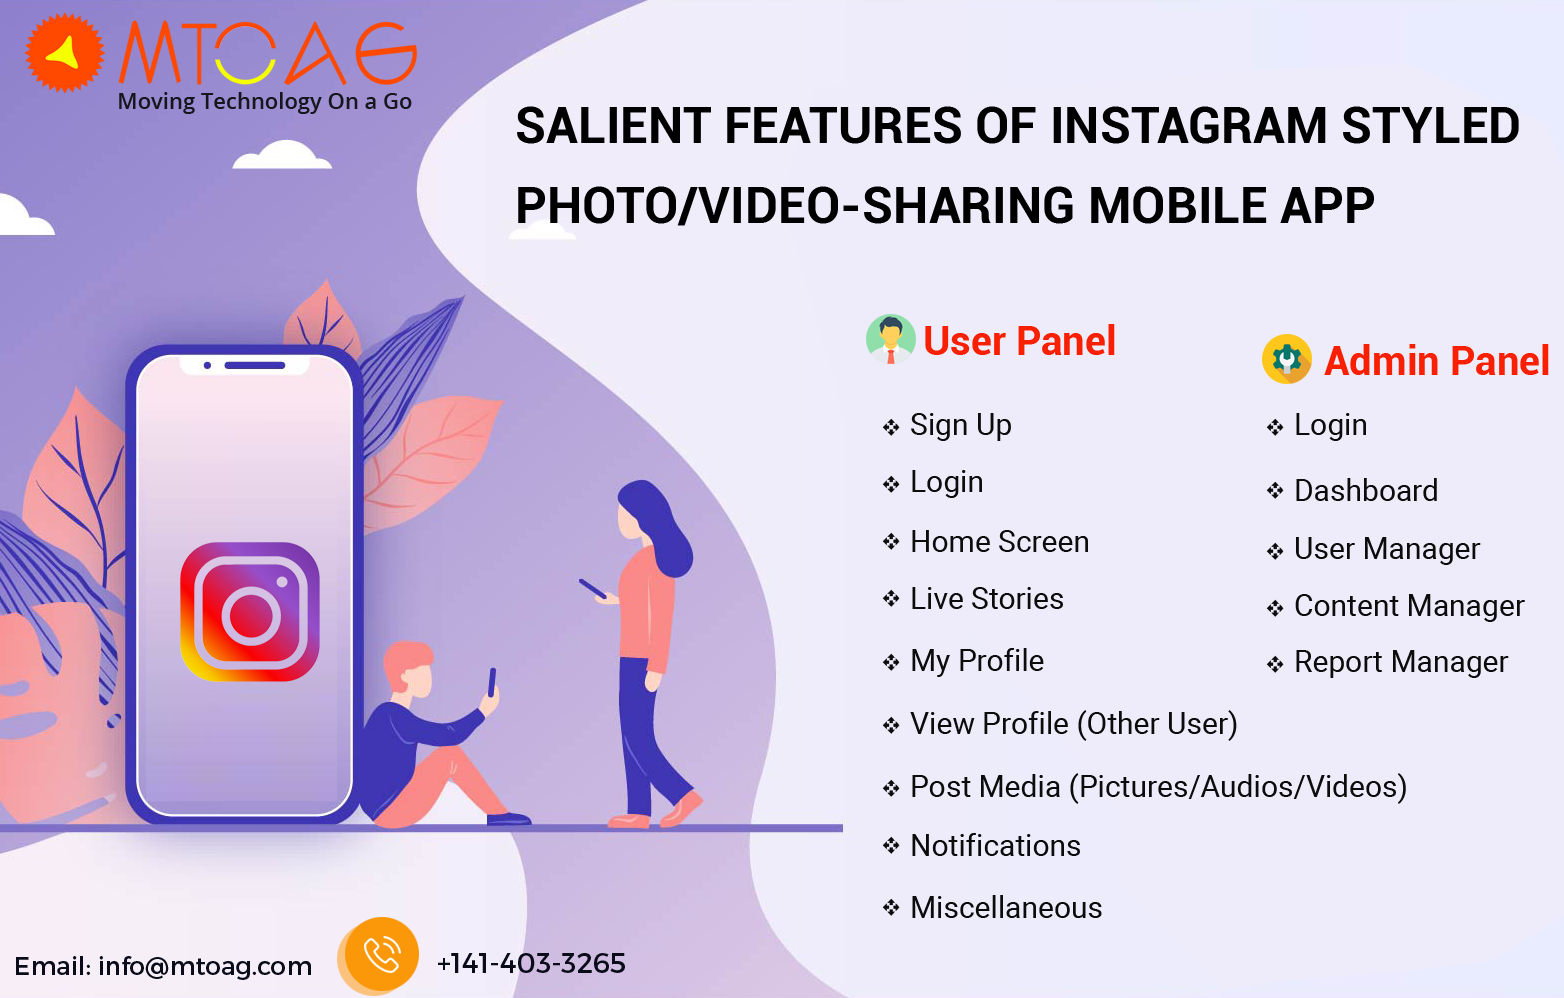 How to create a Mobile App like Instagram?